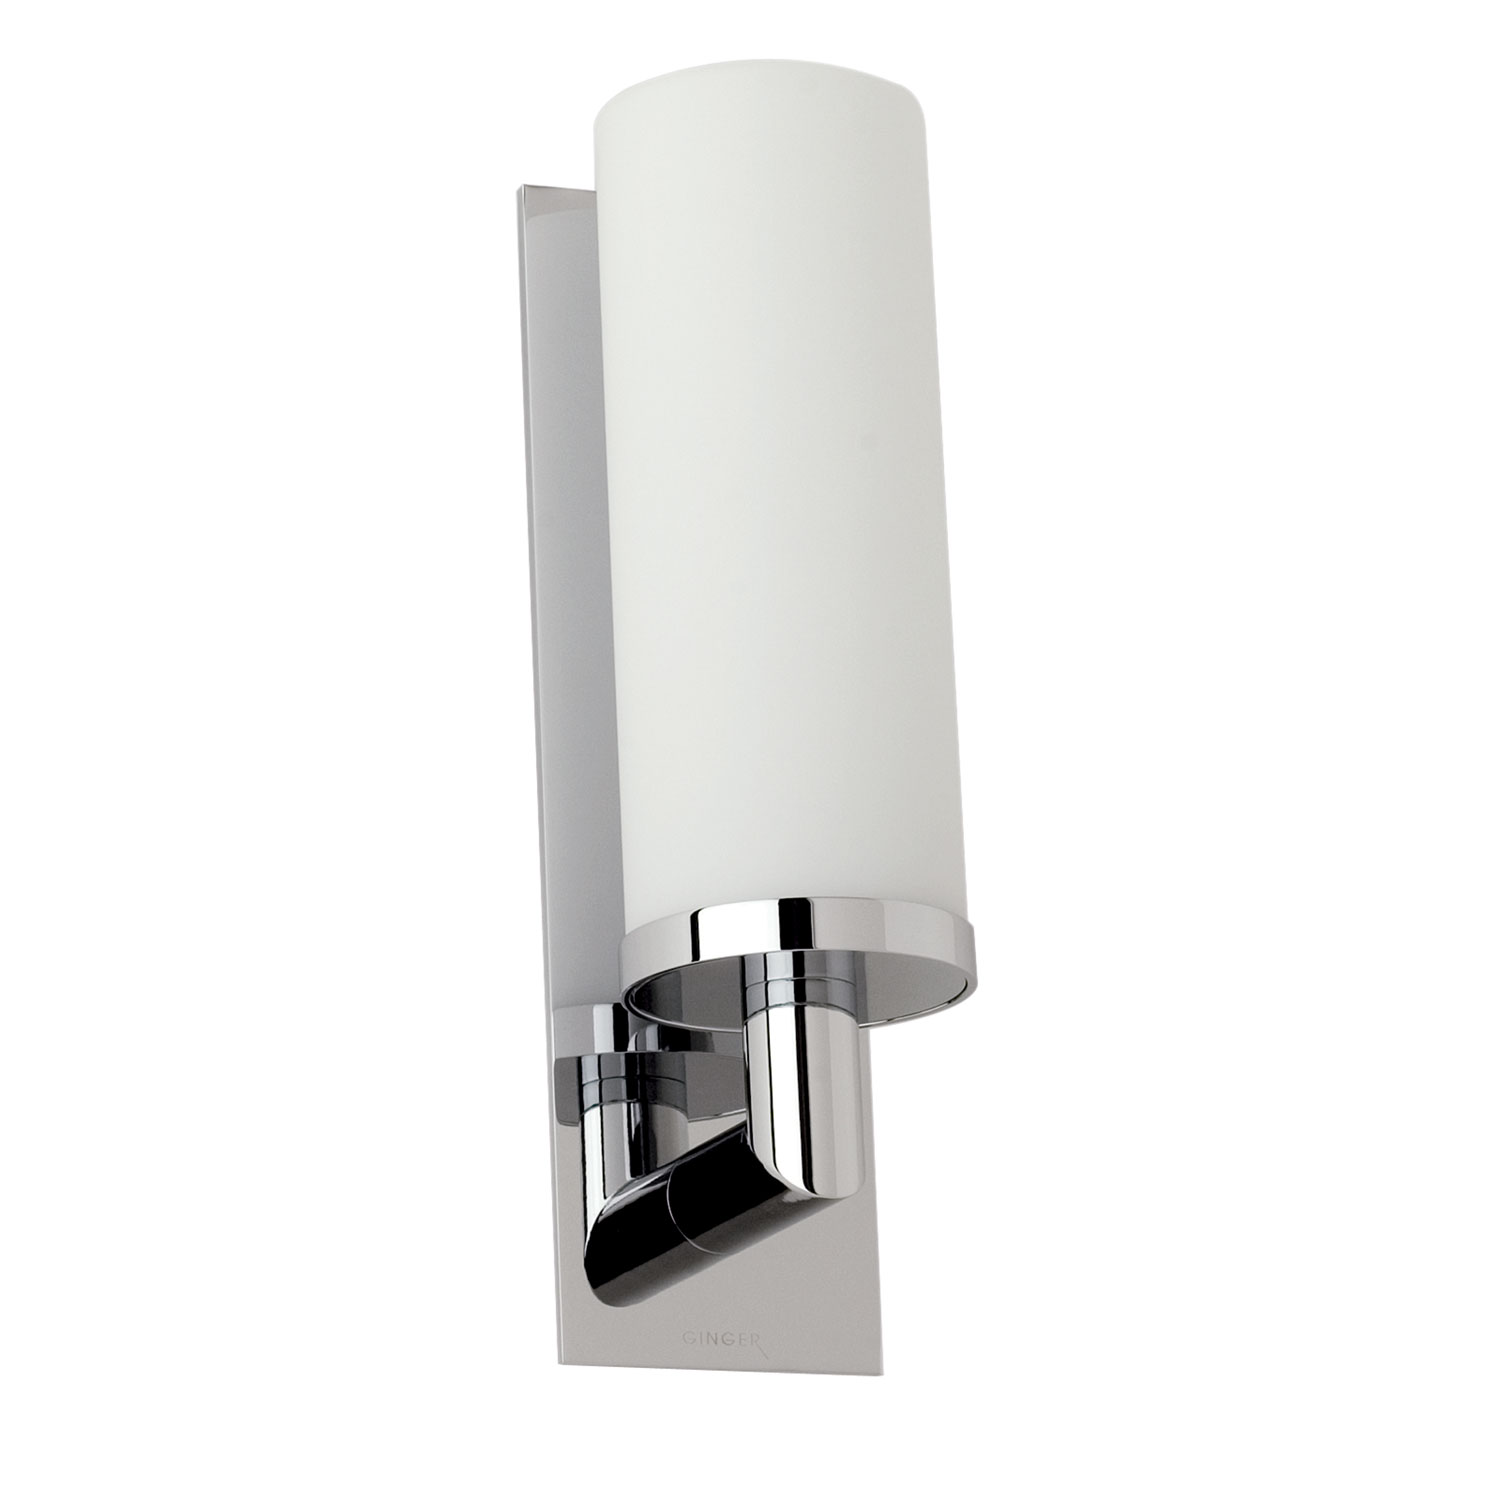 surface vanity wall sconceginger | 2881/pc